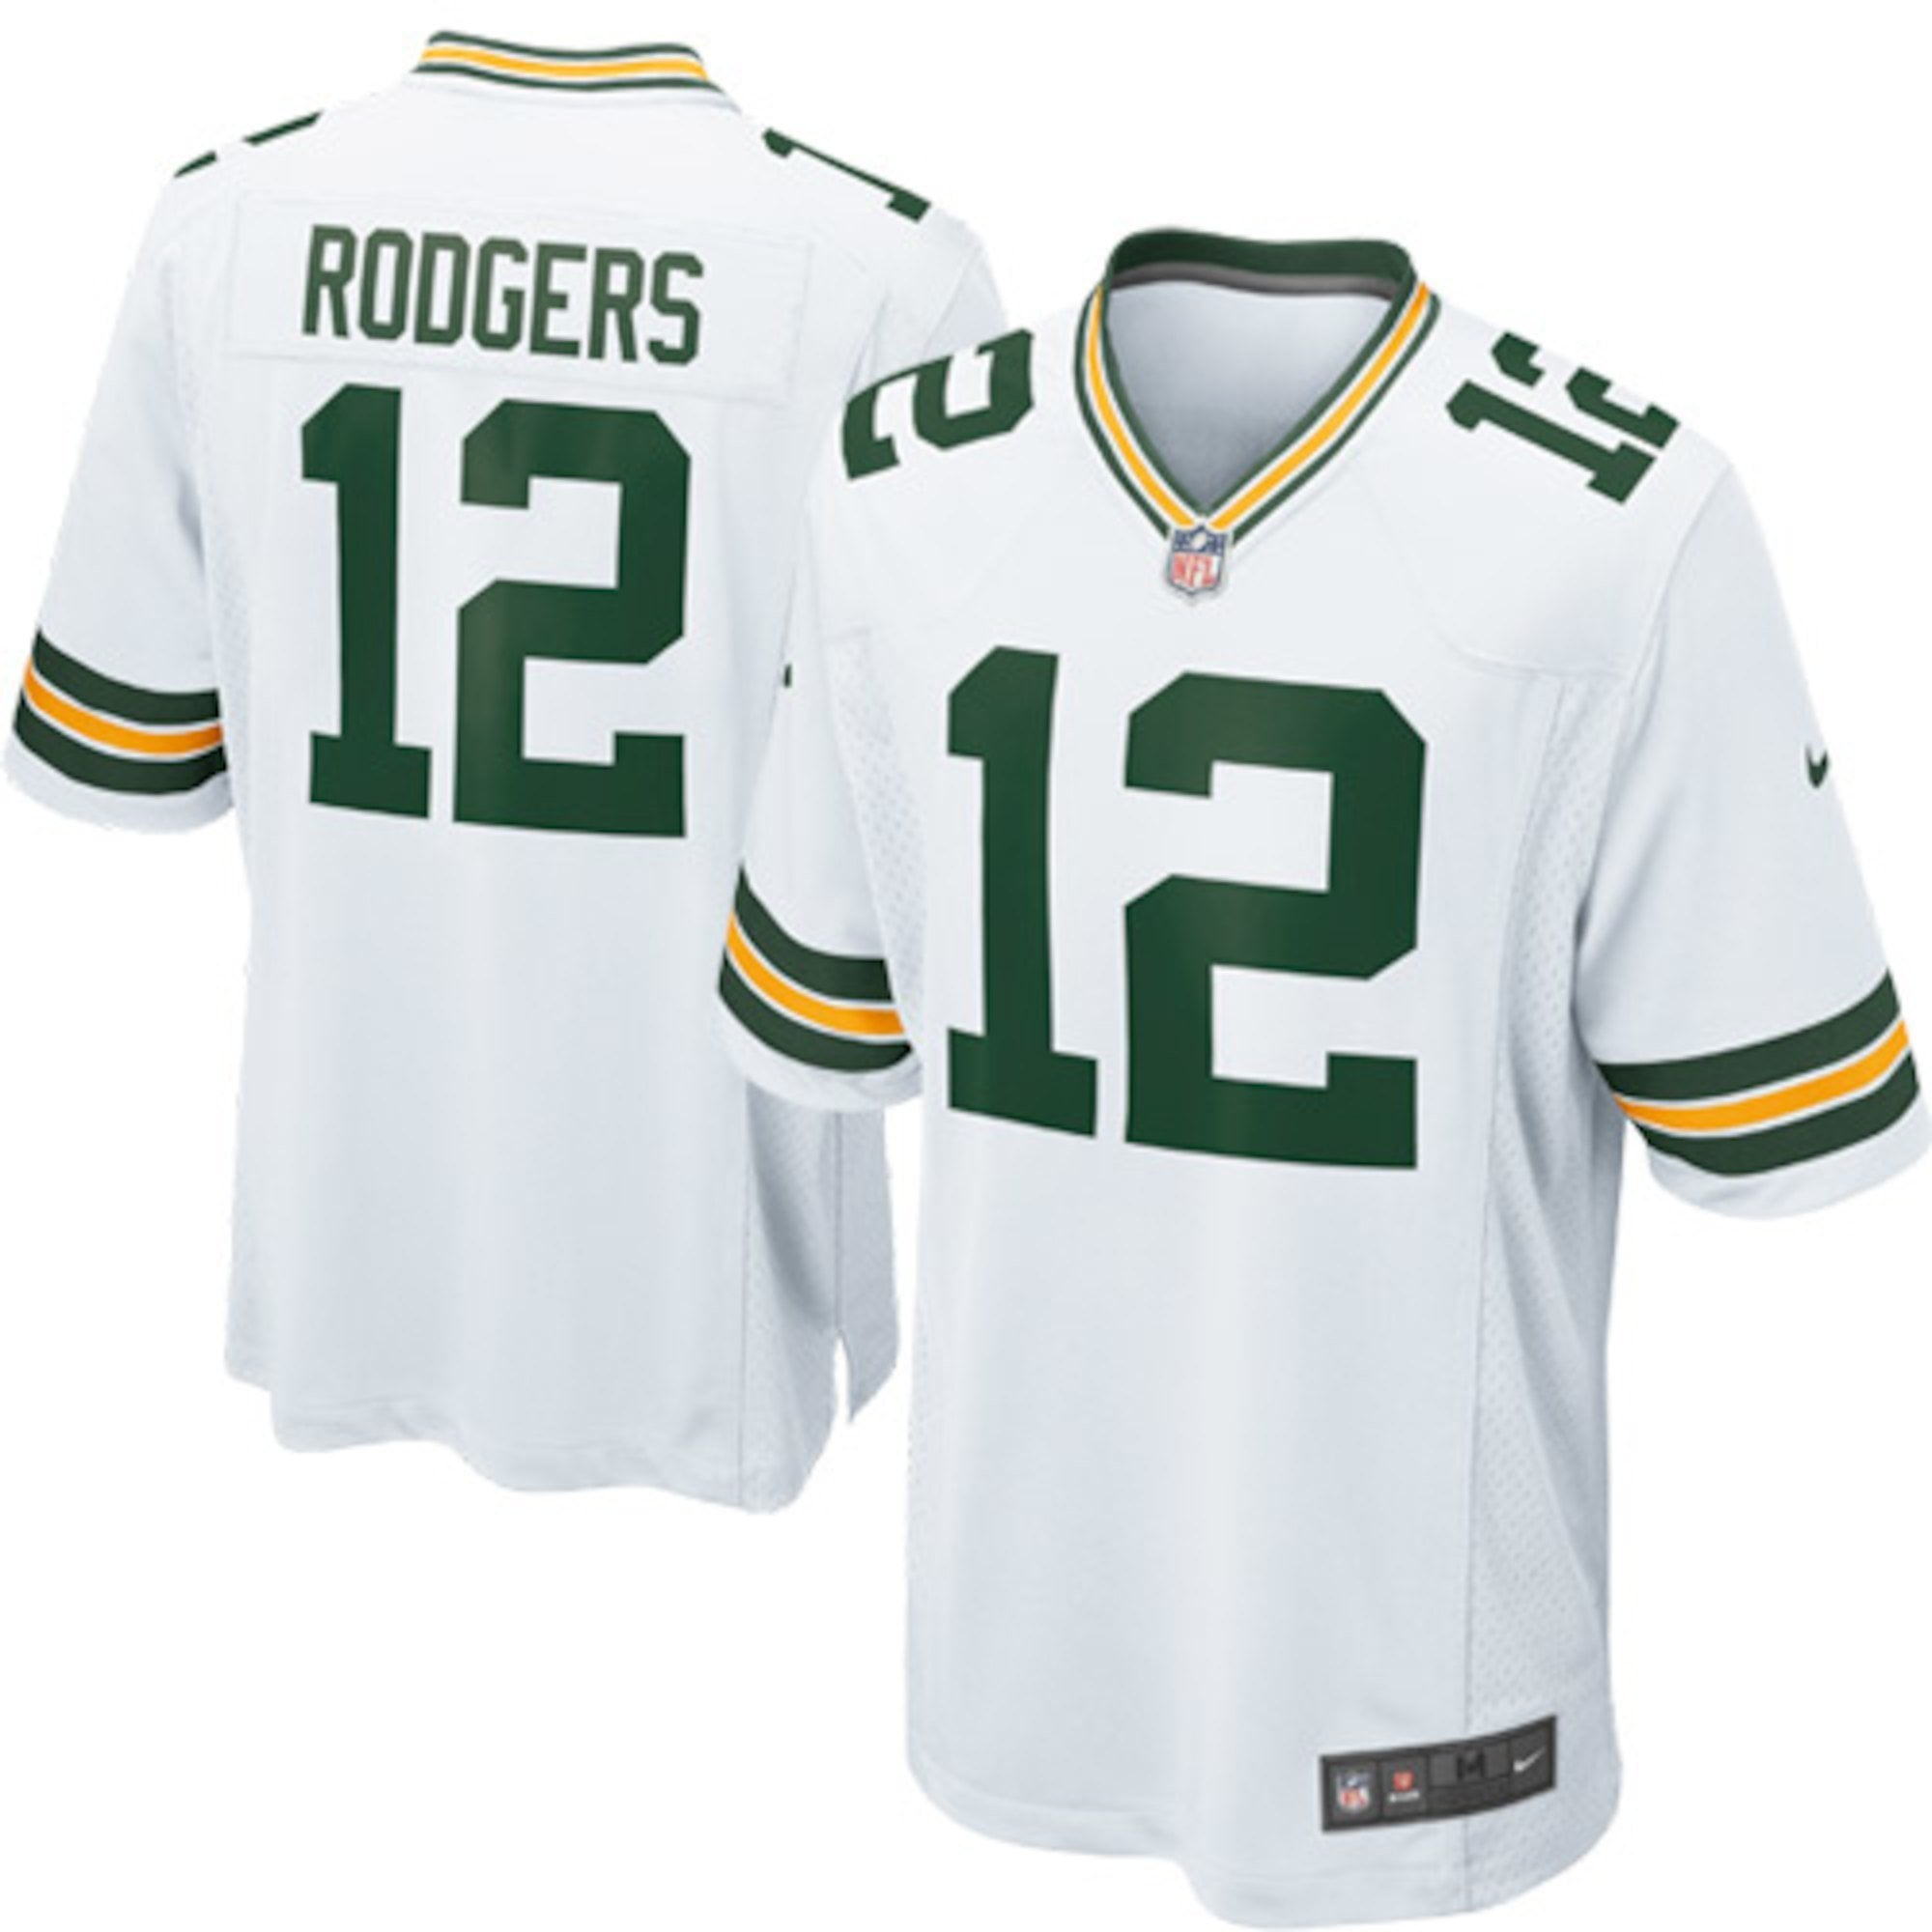 Nike NFL Green Bay Packers Road Game Jersey - Aaron Rodgers